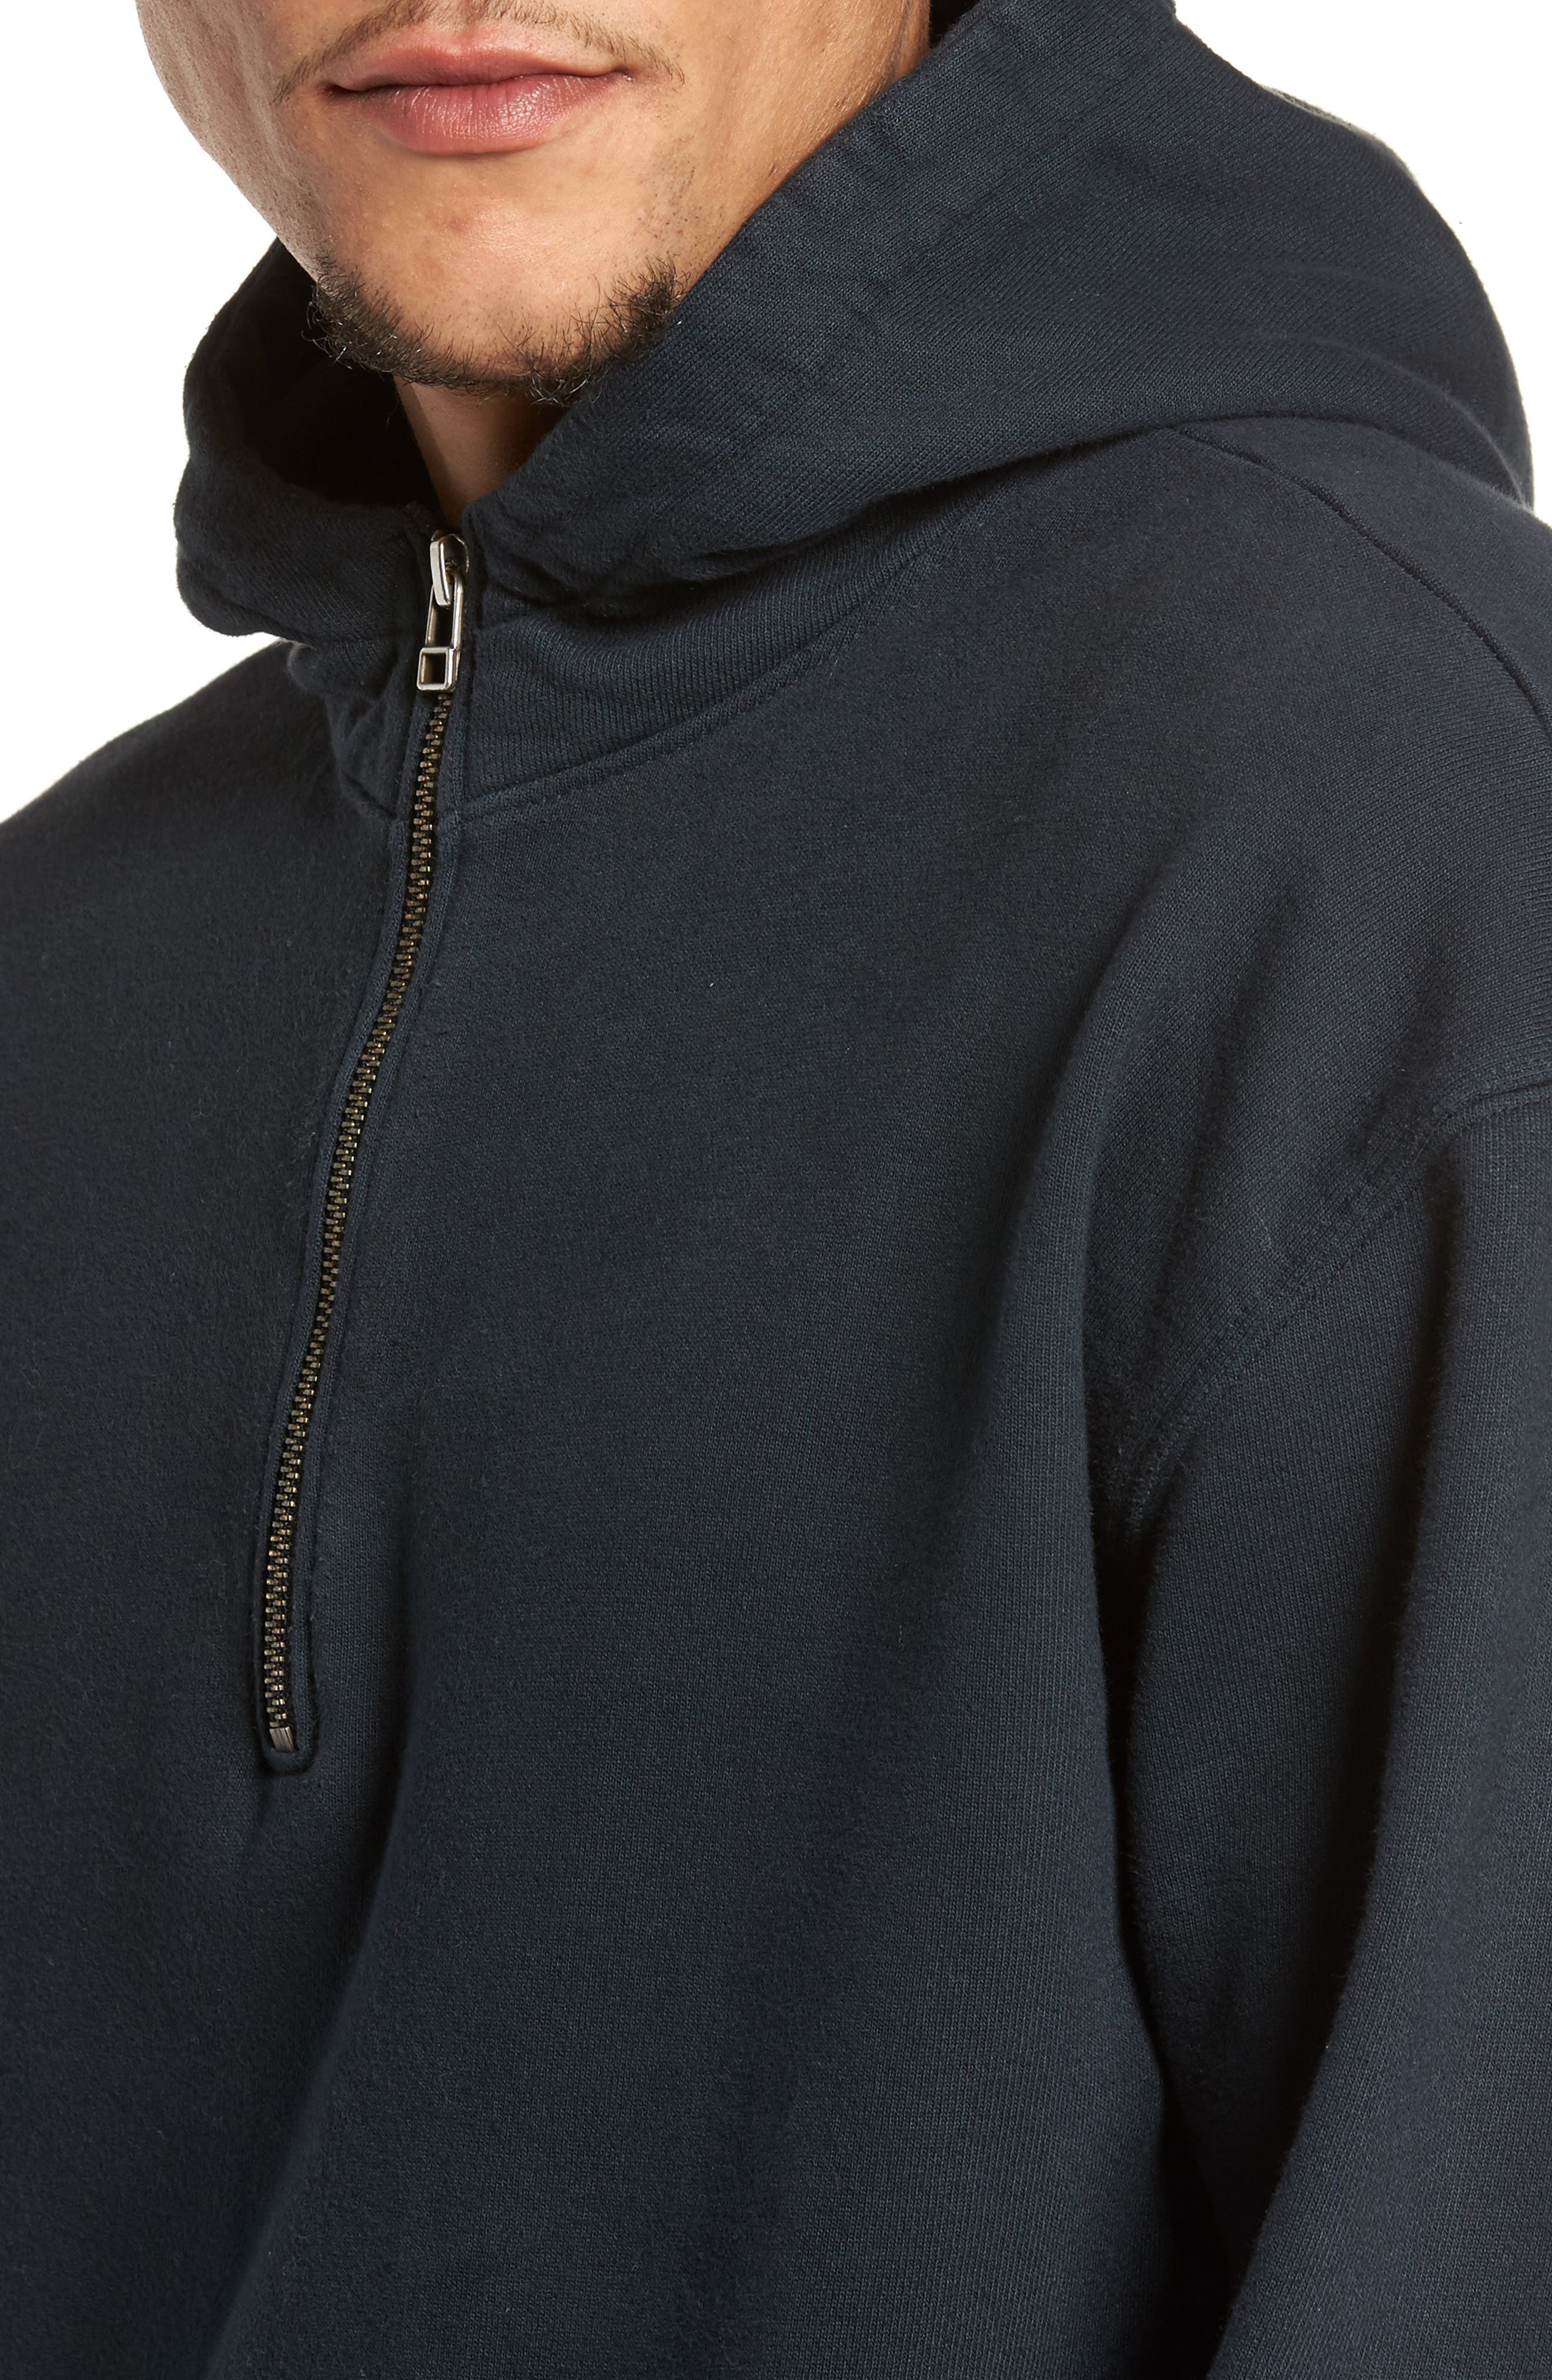 French Terry Hoodie,                             Alternate thumbnail 4, color,                             001